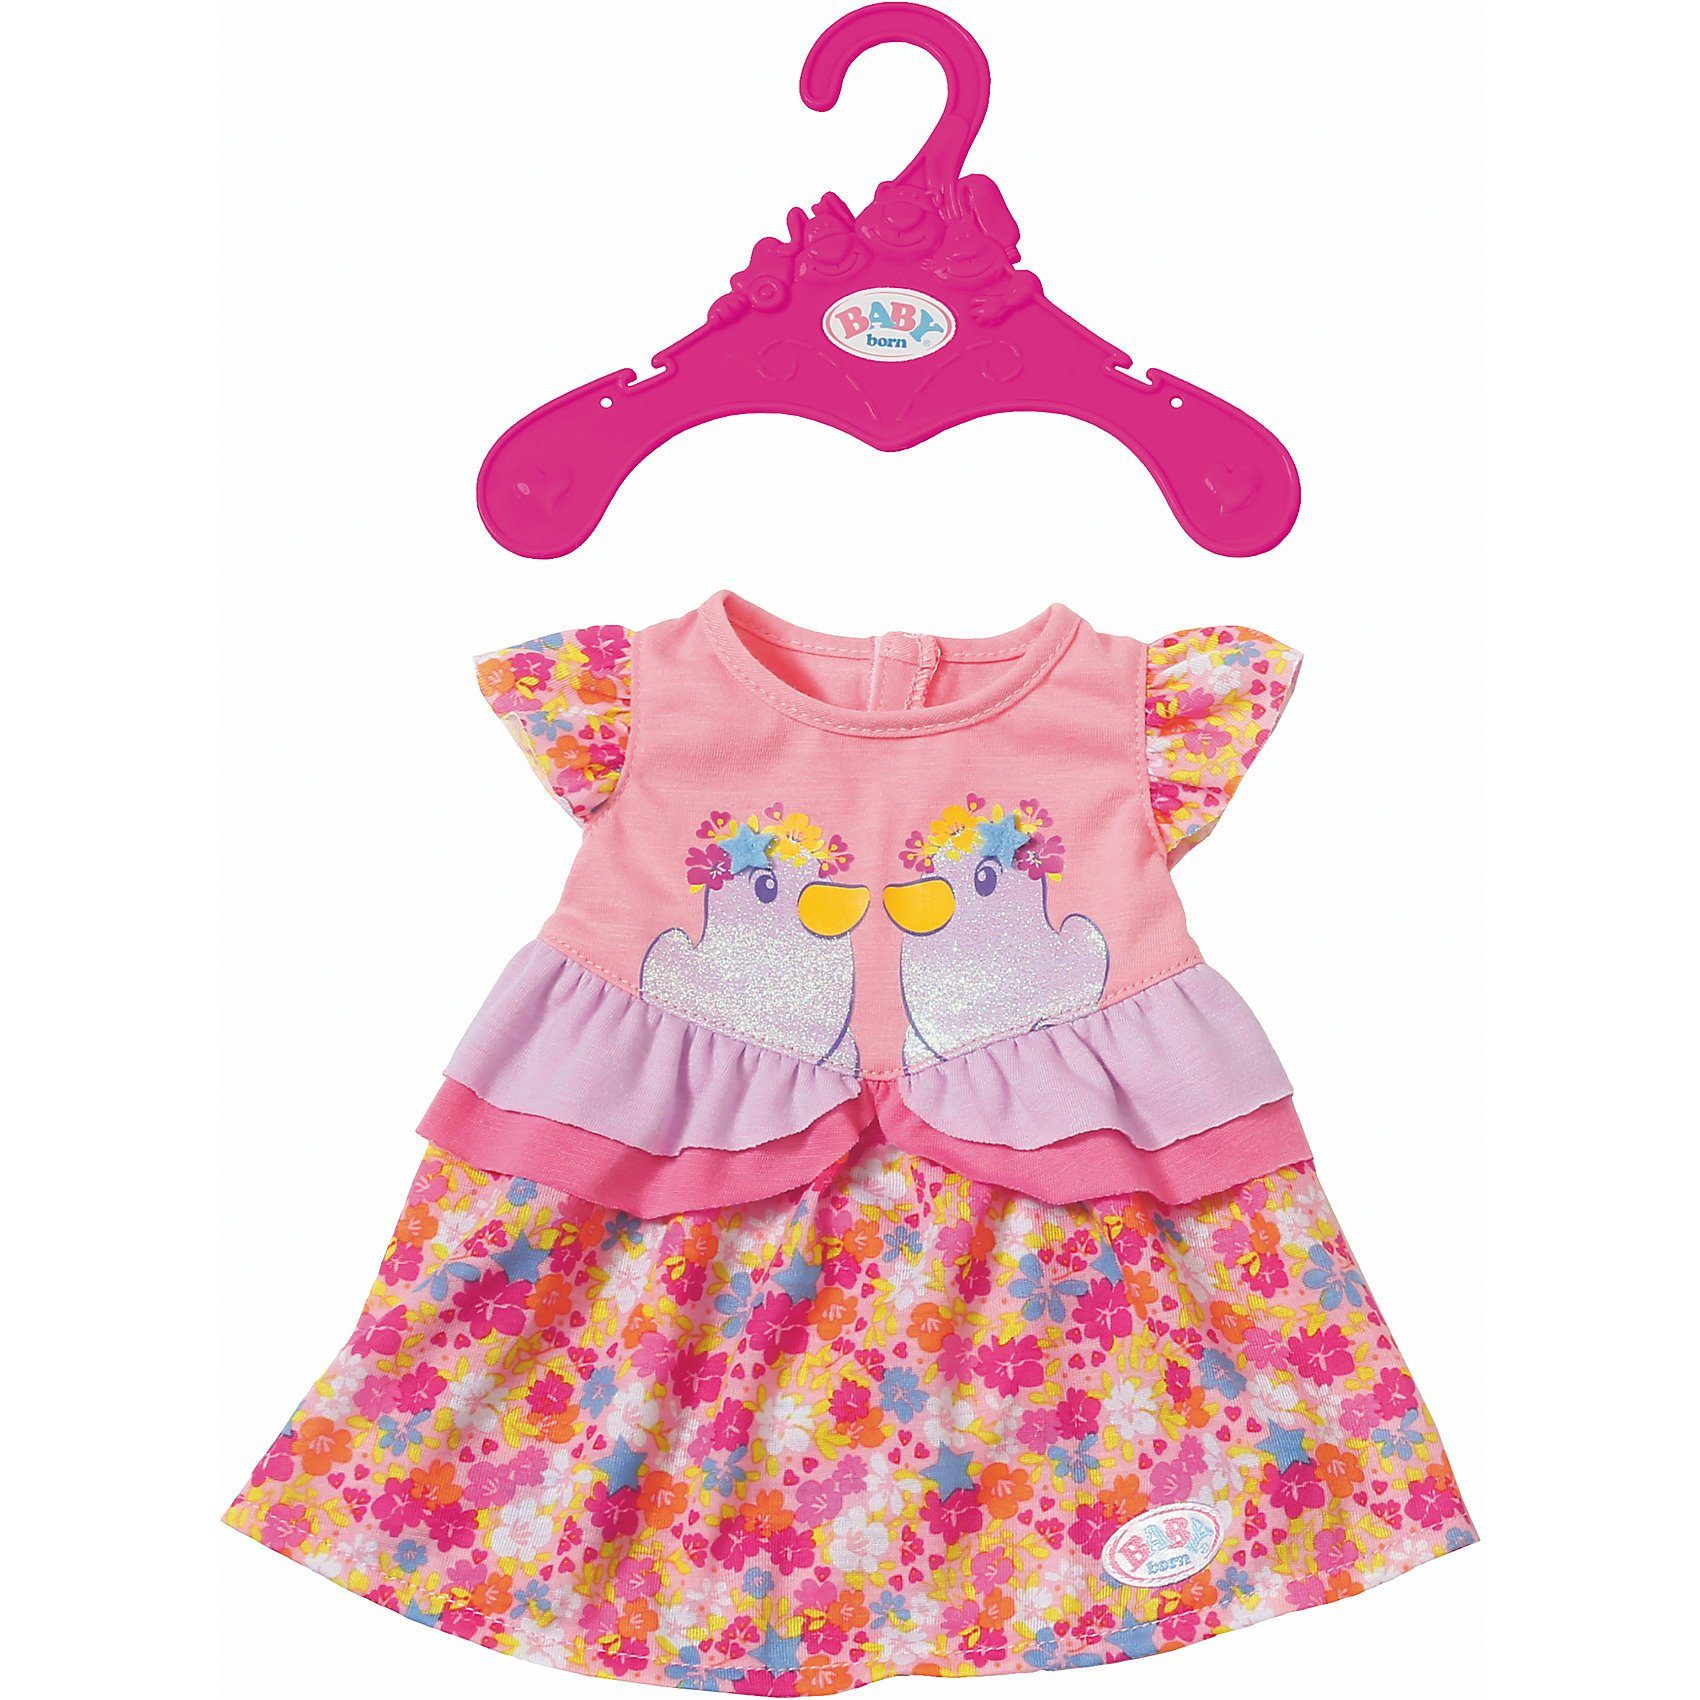 Zapf Creation® BABY born® Kleider Kollektion Gemustert